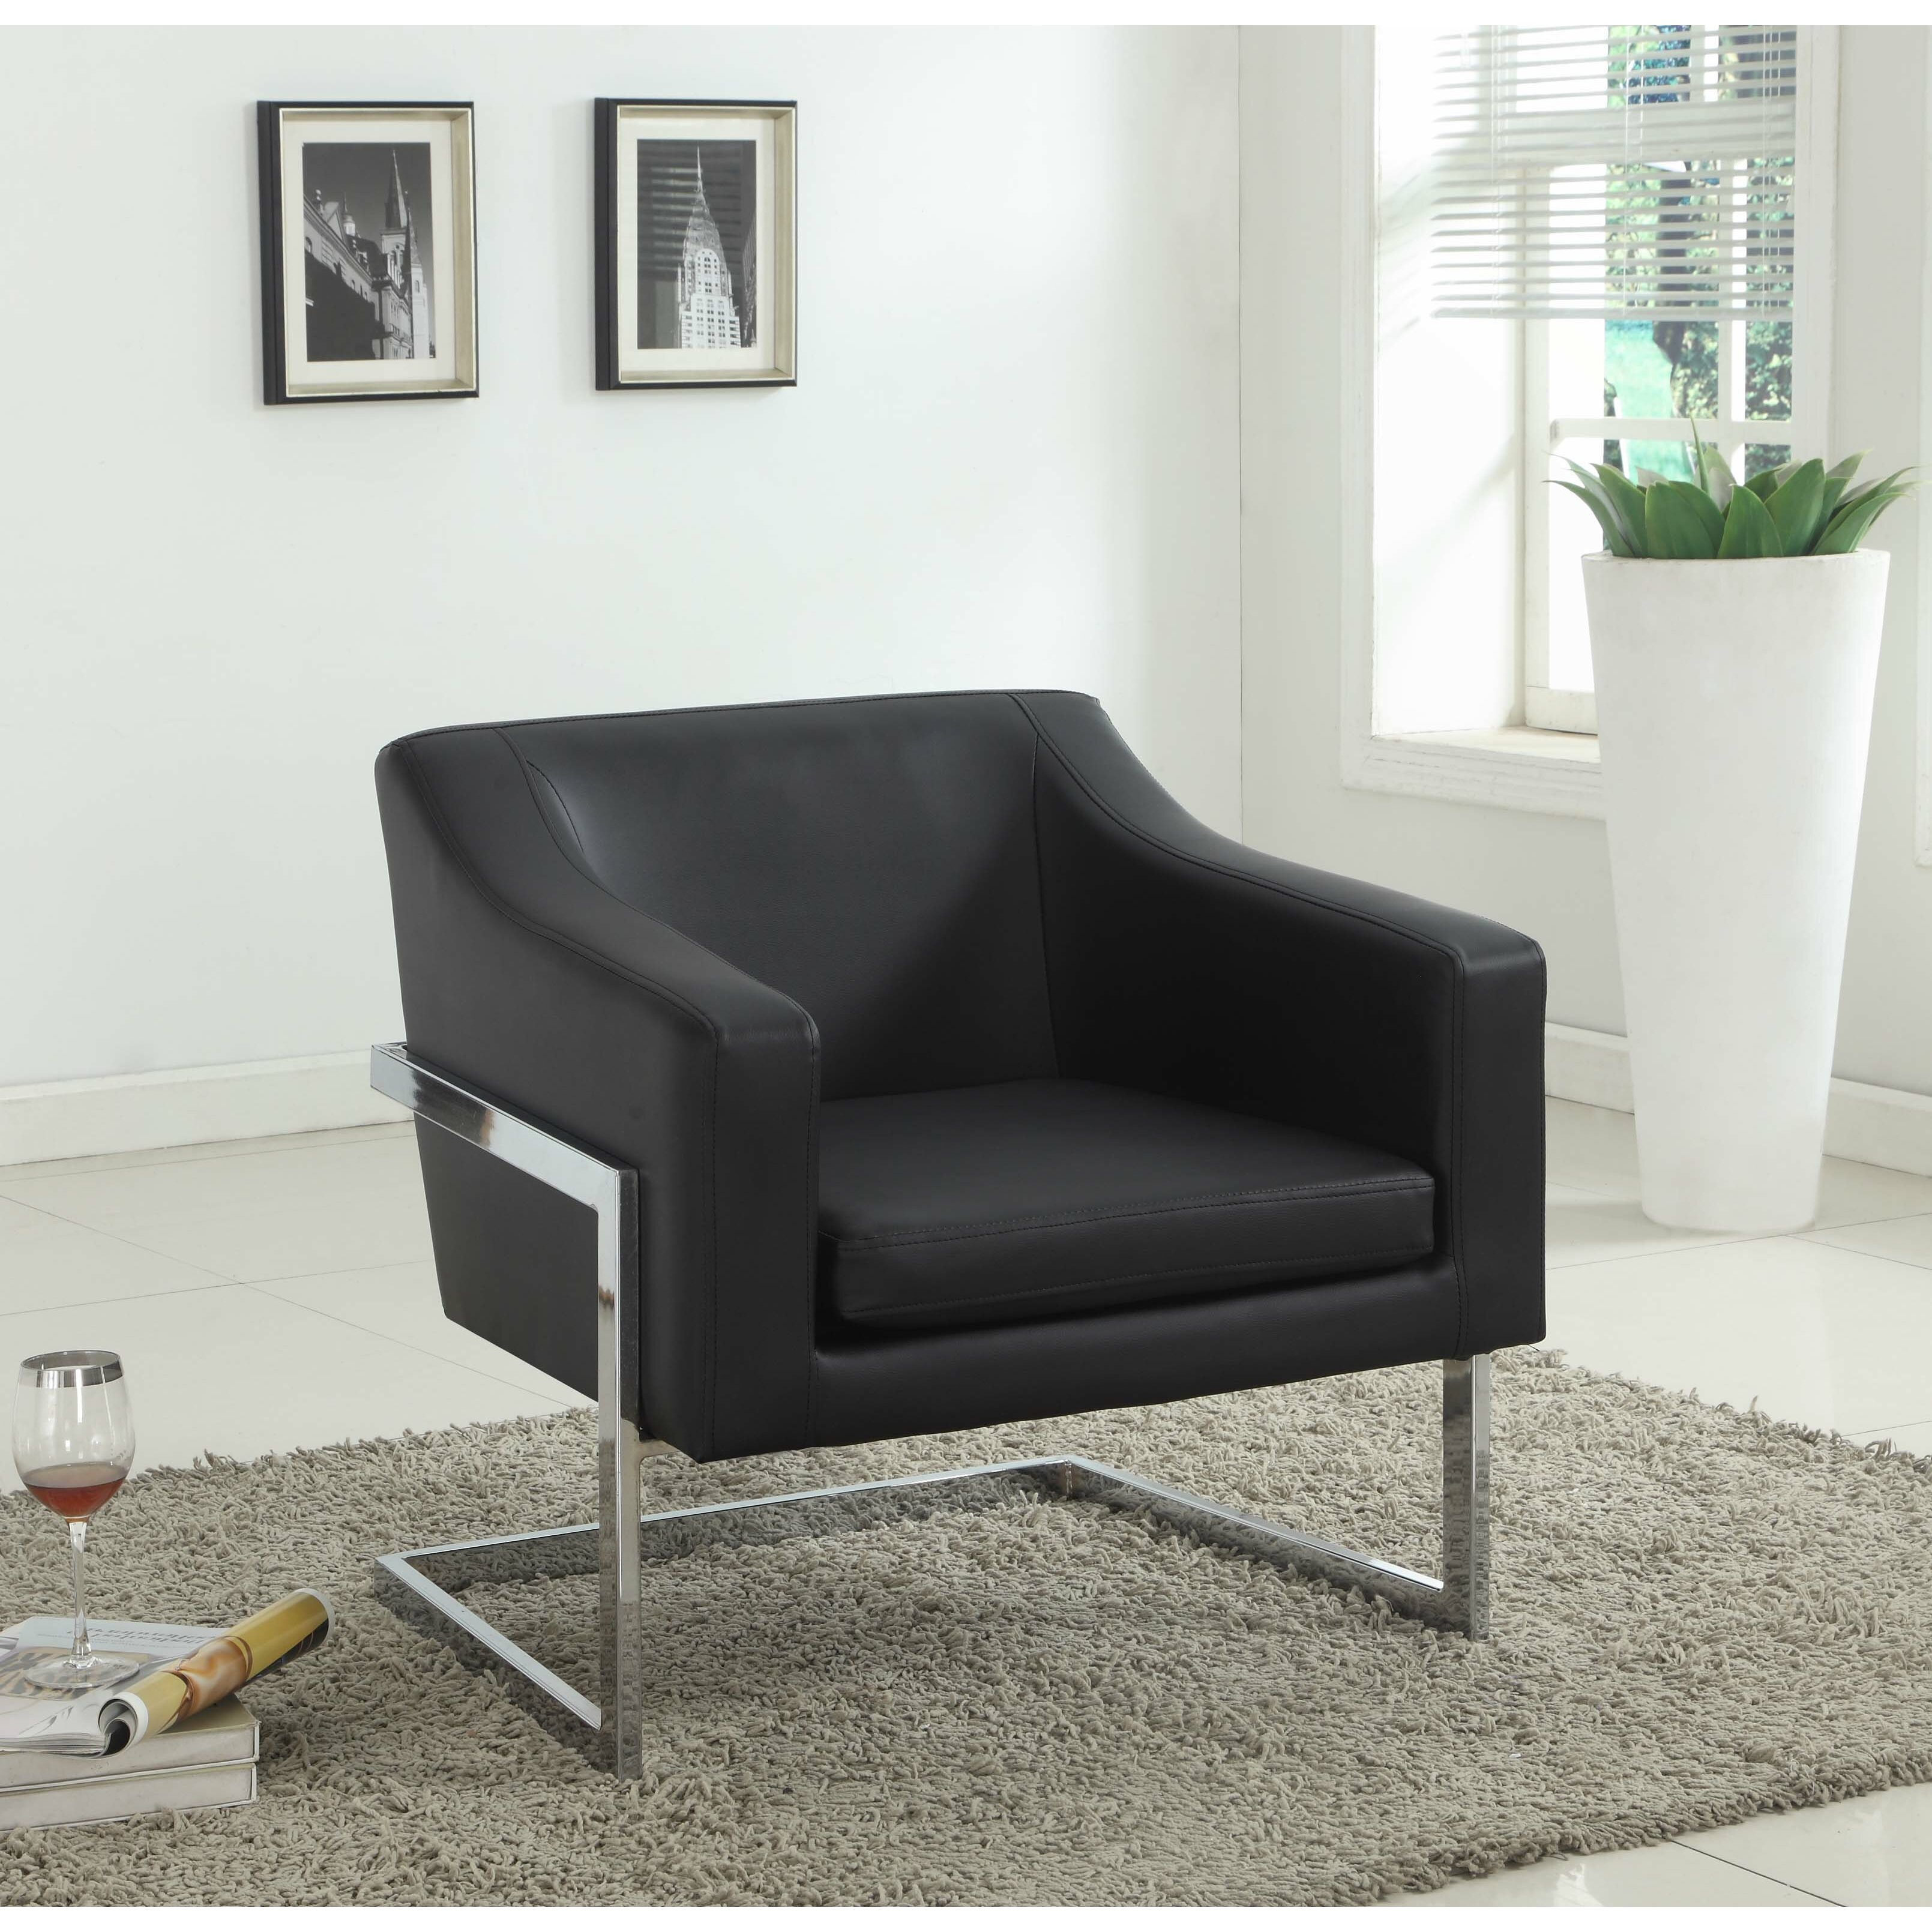 Living Room Club Chairs Bestmasterfurniture Modern Club Chair With Chrome Legs Reviews